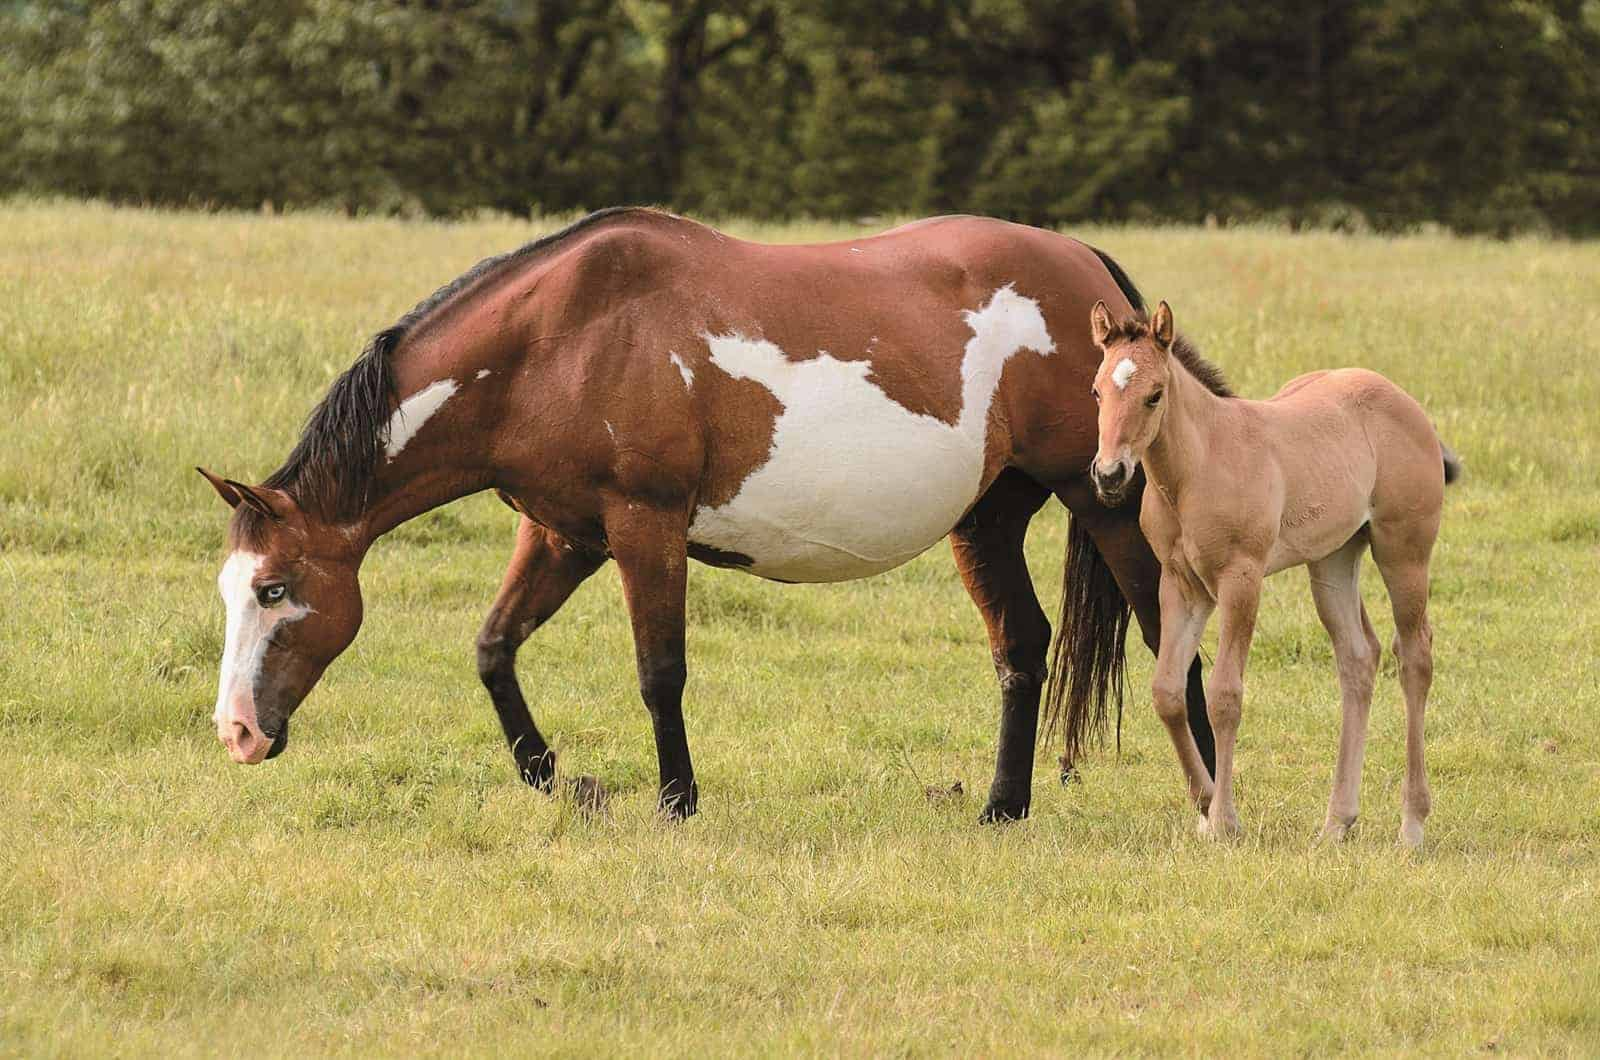 Does My Mare Think A Miniature Horse Is Her Baby The Horse